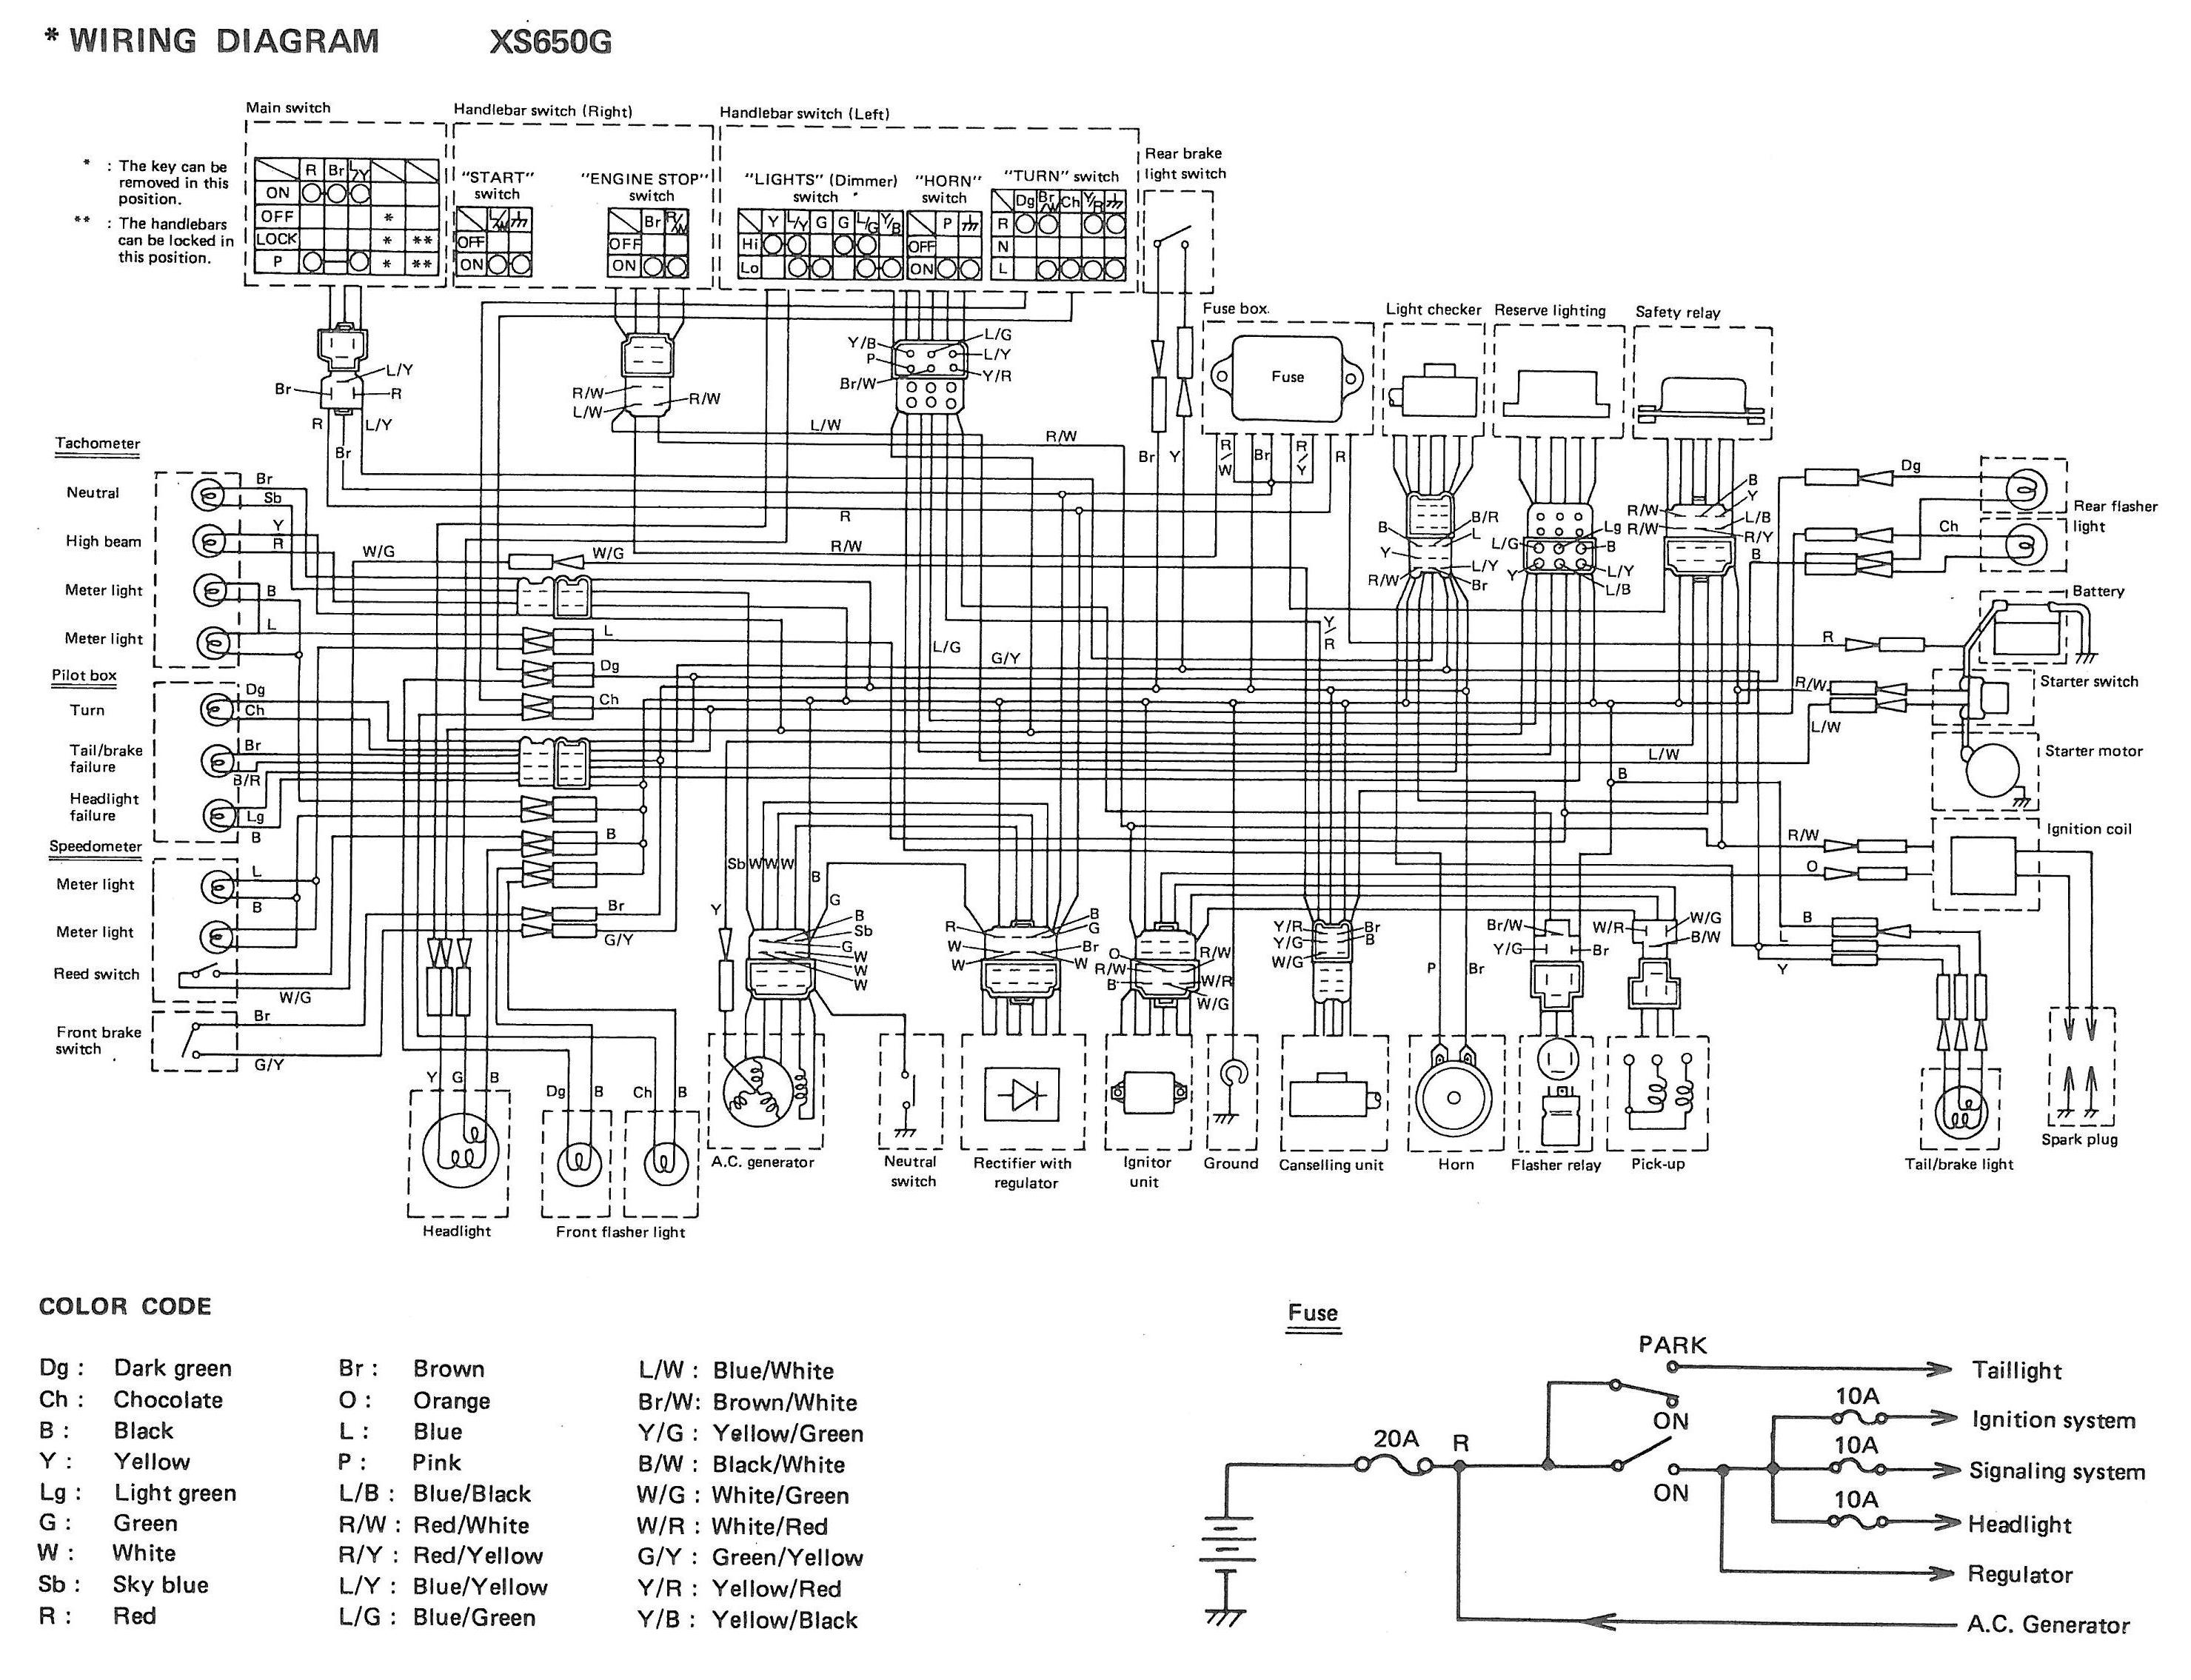 1971 Yamaha Xs650 Wiring Diagram - Collection Of Wiring Diagram •